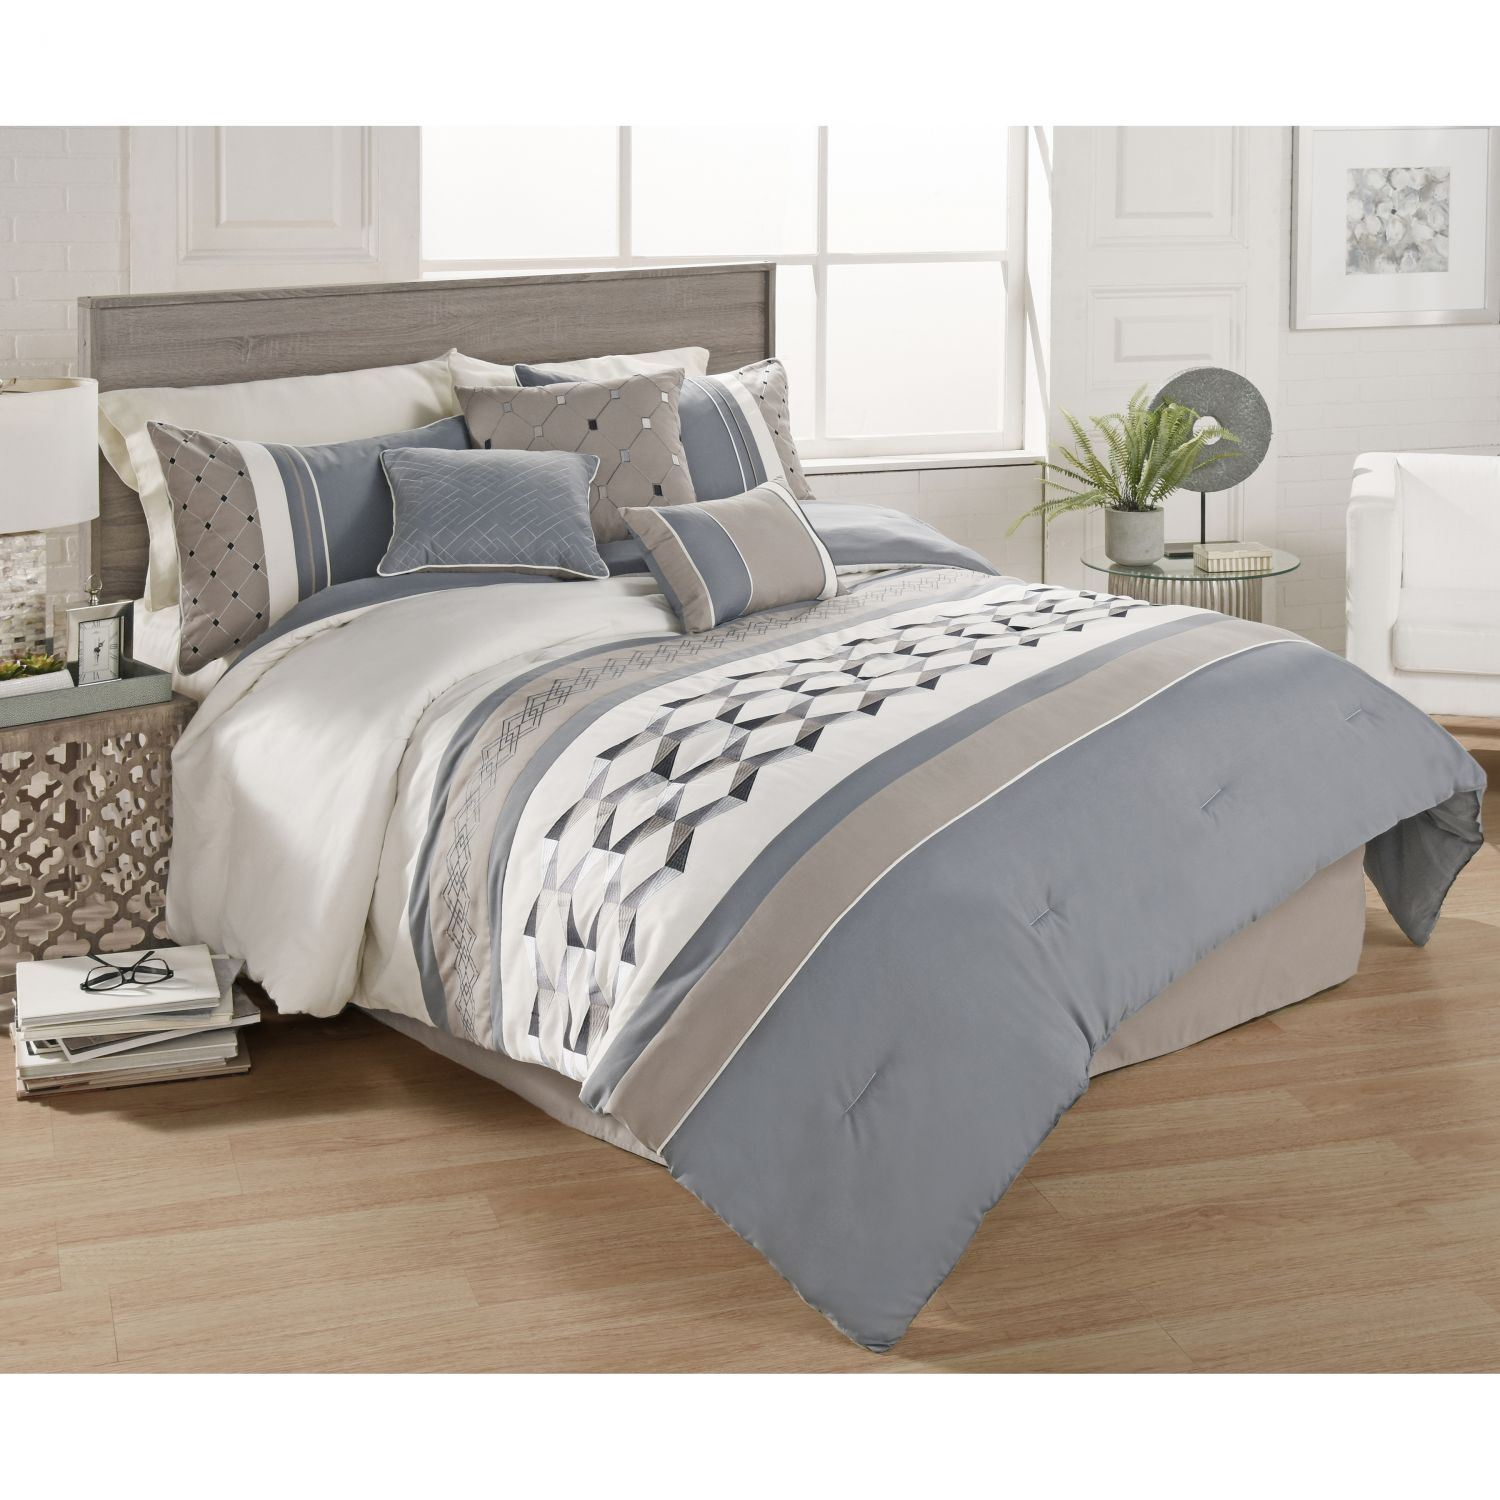 Bailey 7 Piece King Comforter Set | Bedding | HALLMART